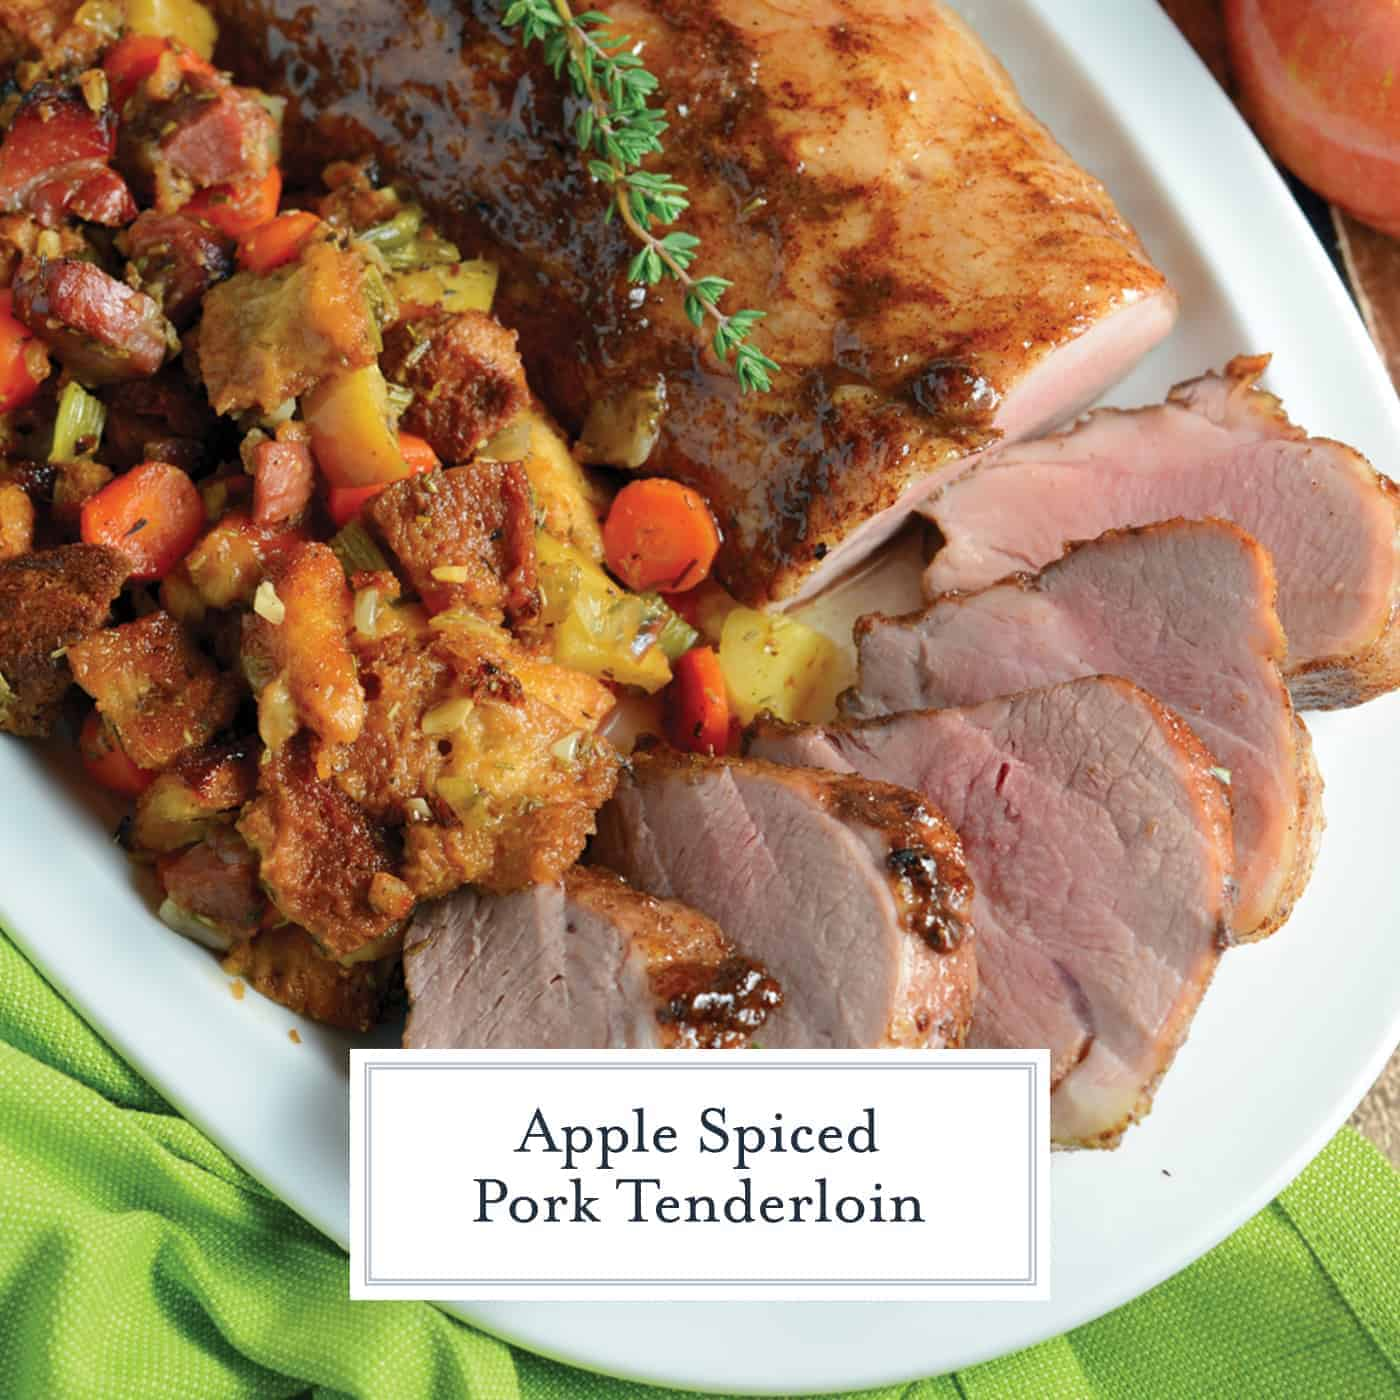 Apple Spiced Pork Tenderloin is a pork tenderloin recipe  that will blow you away with aromatic spices and an apple jelly glaze, surrounding with fresh apple and ham stuffing, all cooked on the same baking sheet. #porktenderloinrecipe www.savoryexperiments.com